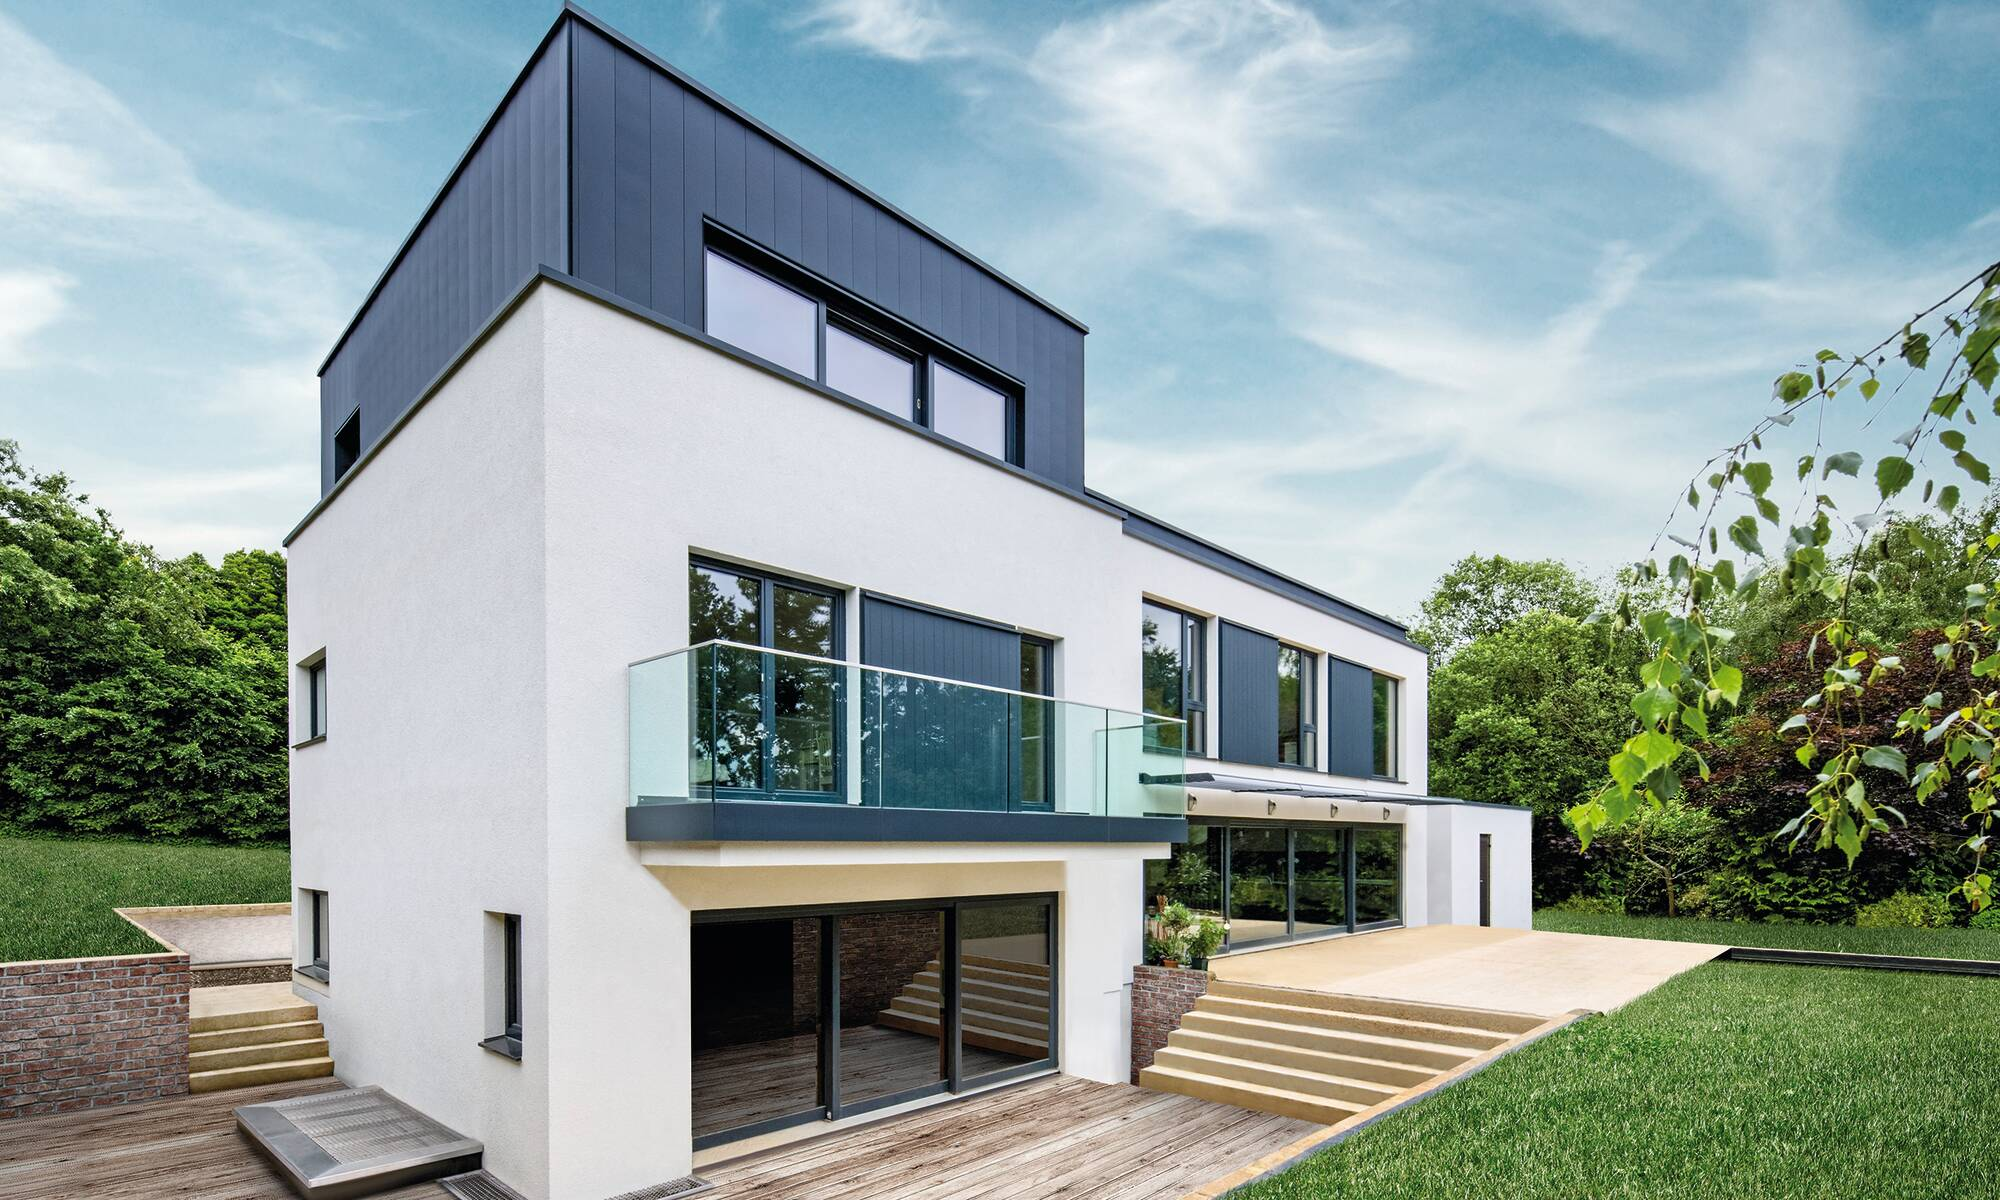 Bespoke, 3-storey prefabricated home